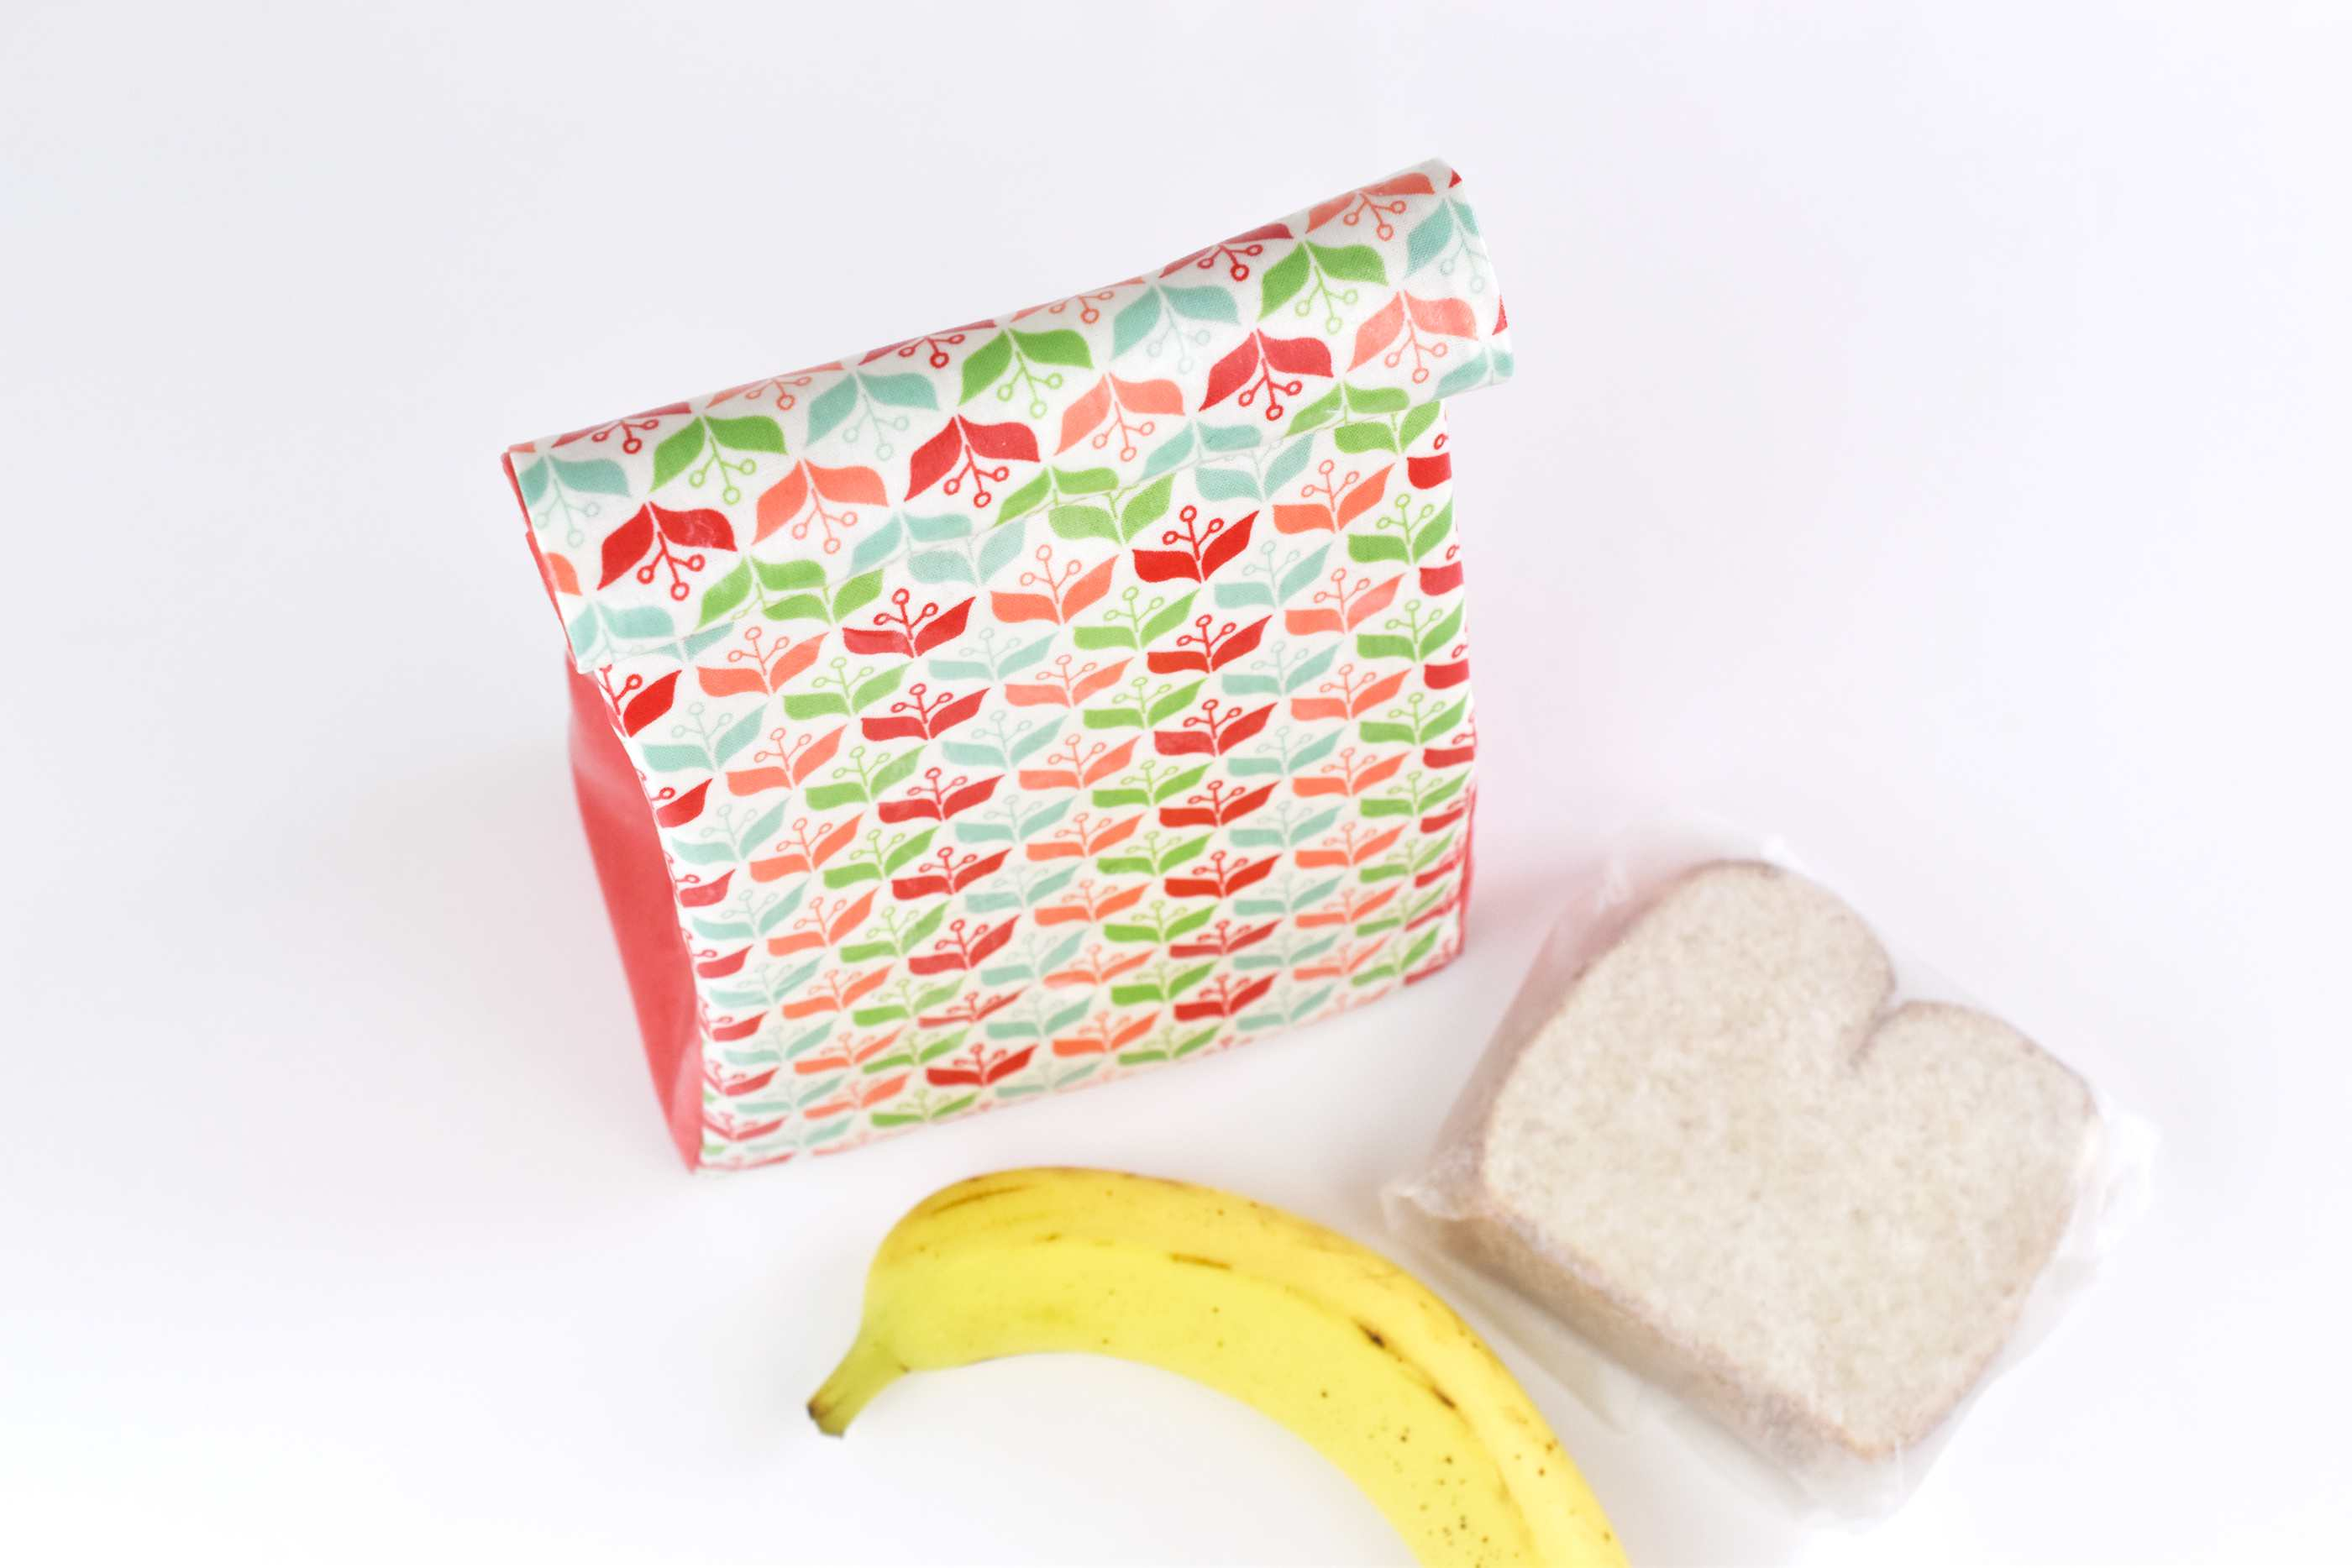 Finished Reusable Lunch Bag